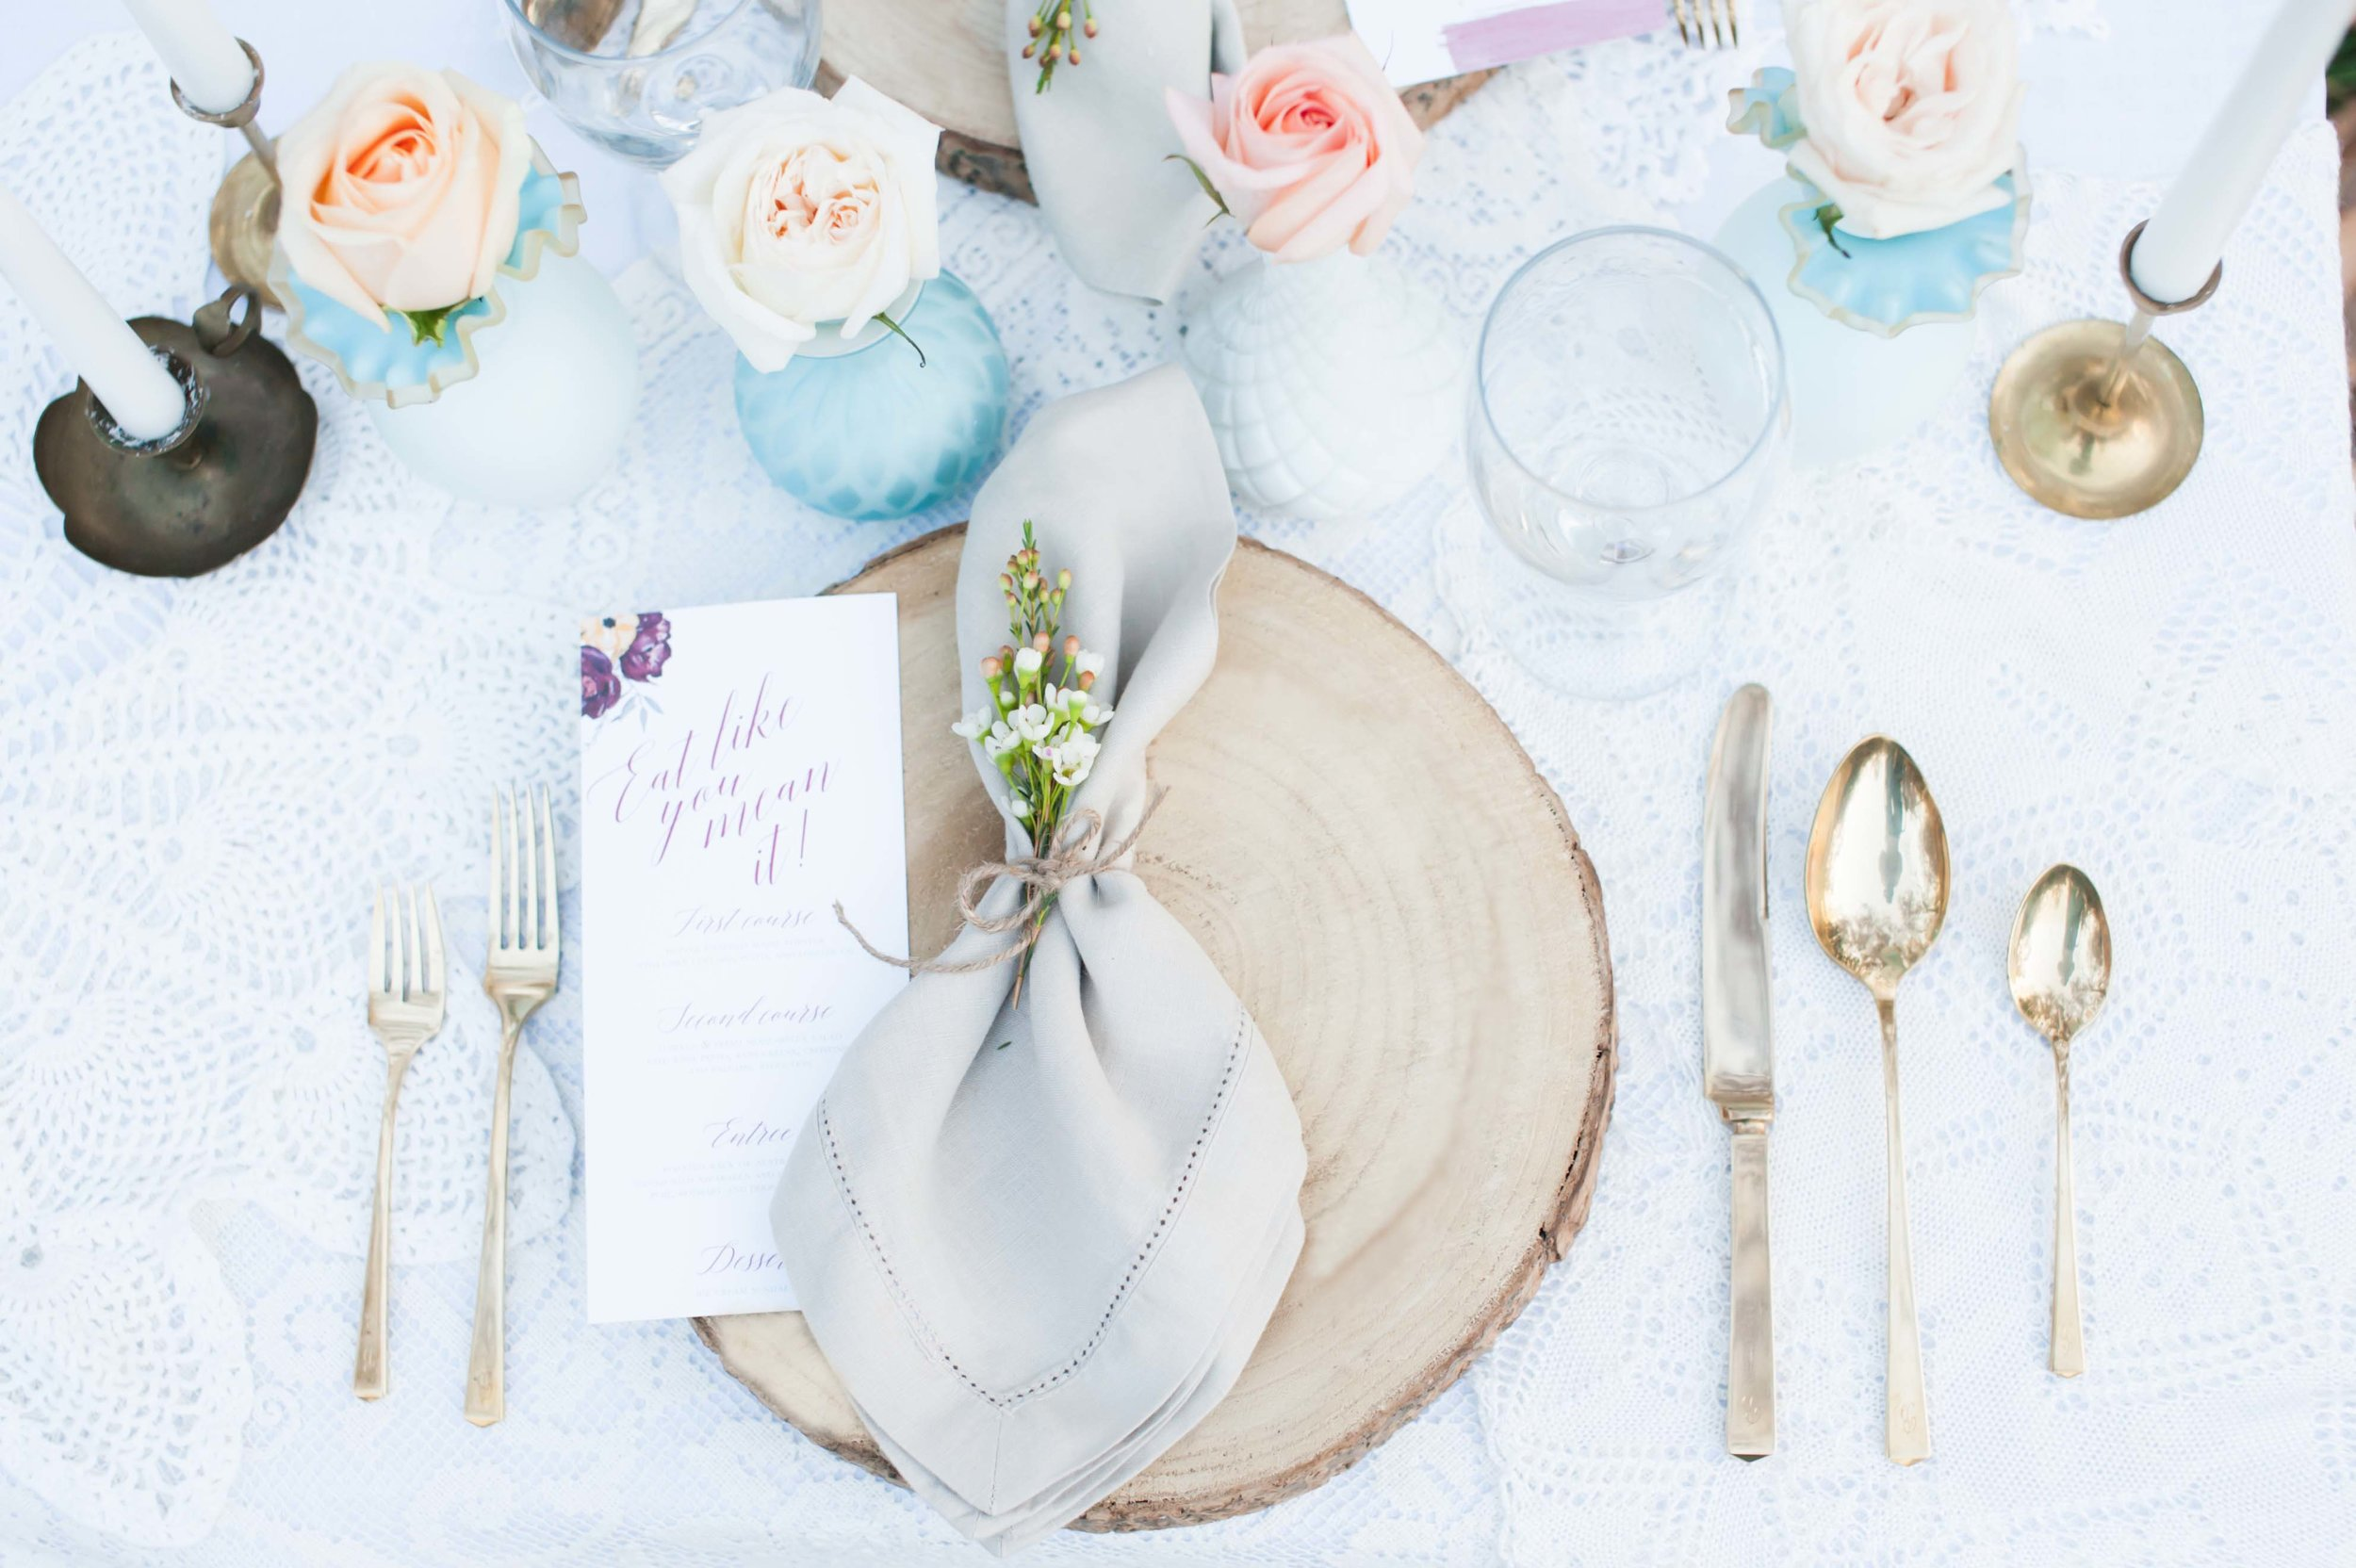 Rustic Romance tablescape 1 - editted.jpg